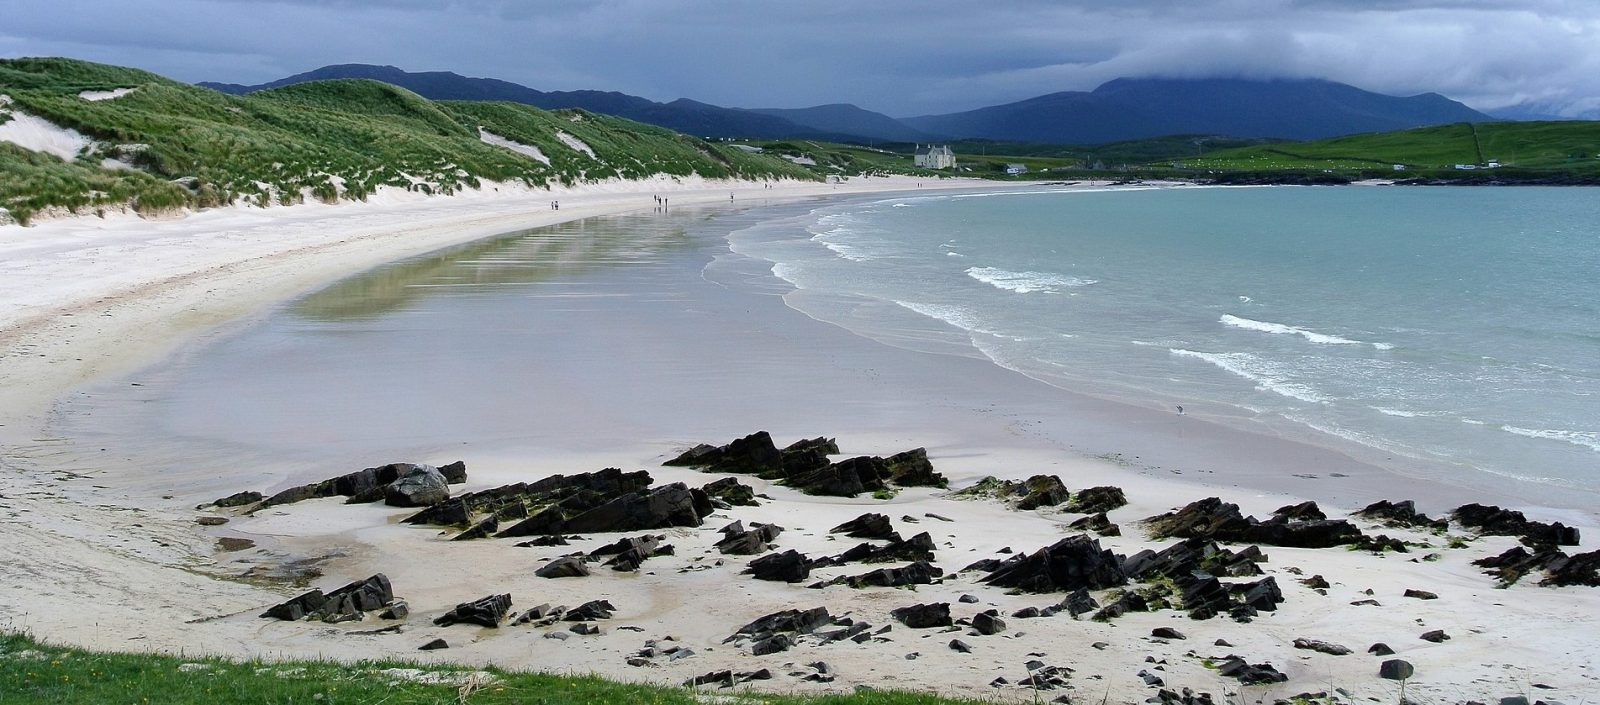 Beach along the NC500 in Scotland